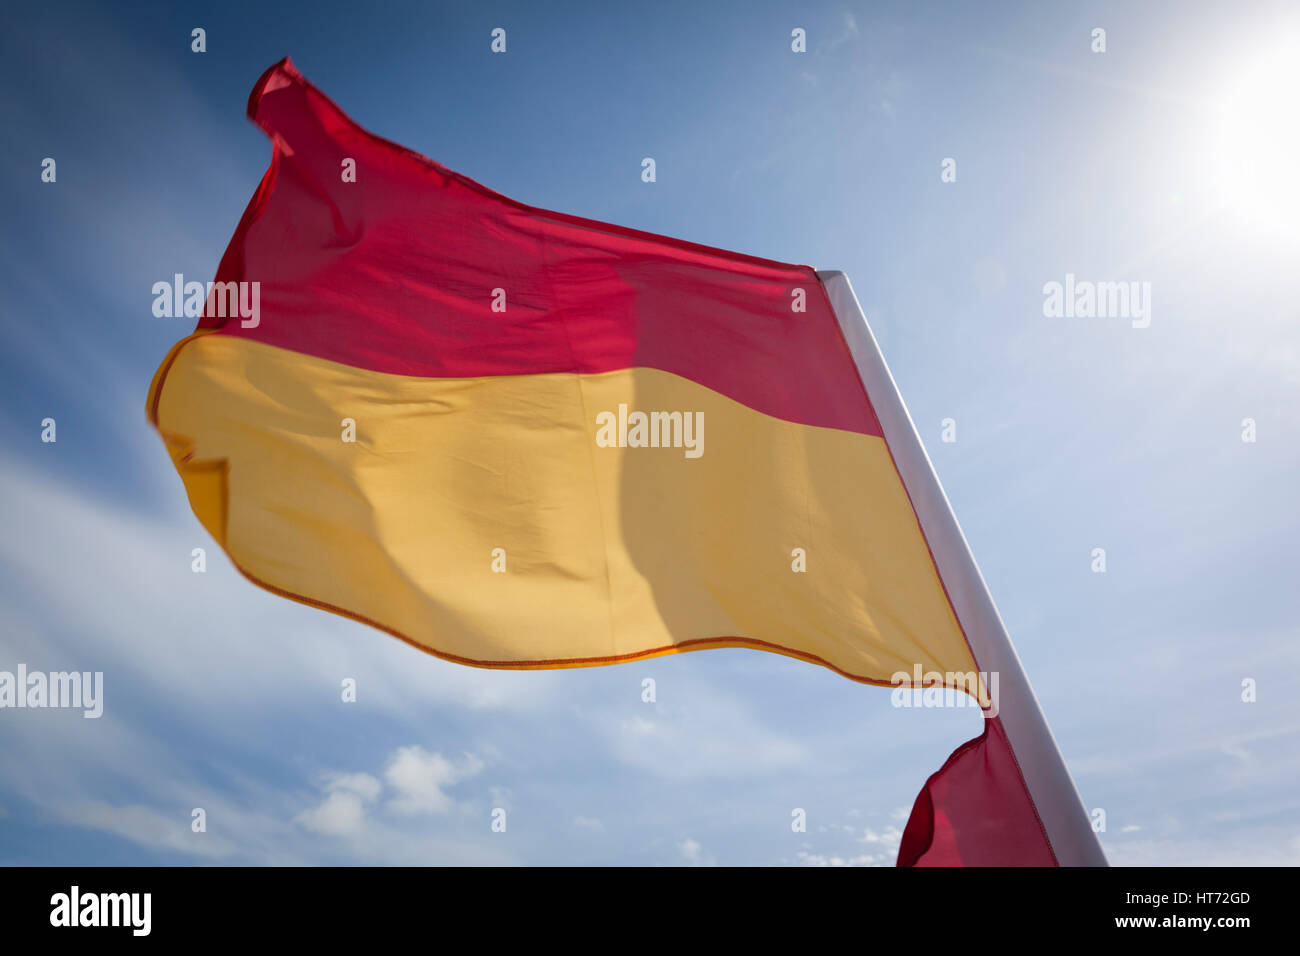 WOOLACOMBE, UK - MAY 19: A red and yellow safety flag fluttering in the wind against a bright blue sky at Woolacombe - Stock Image